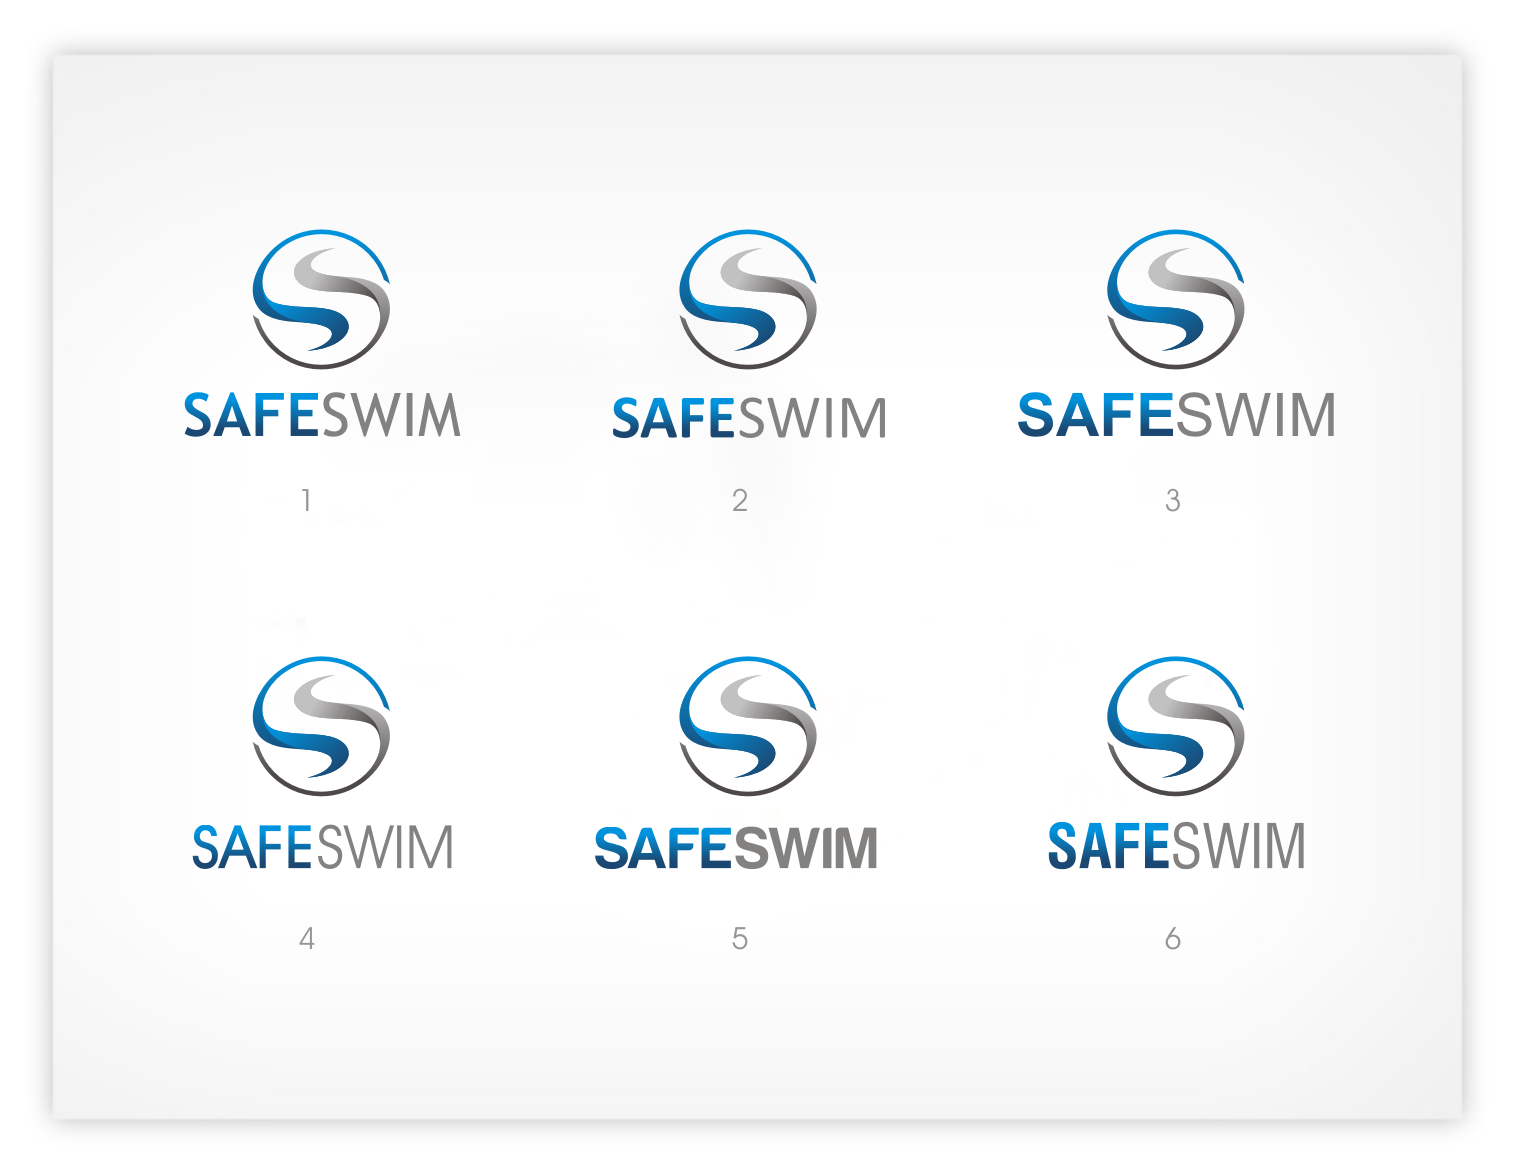 New logo wanted for SafeSwim